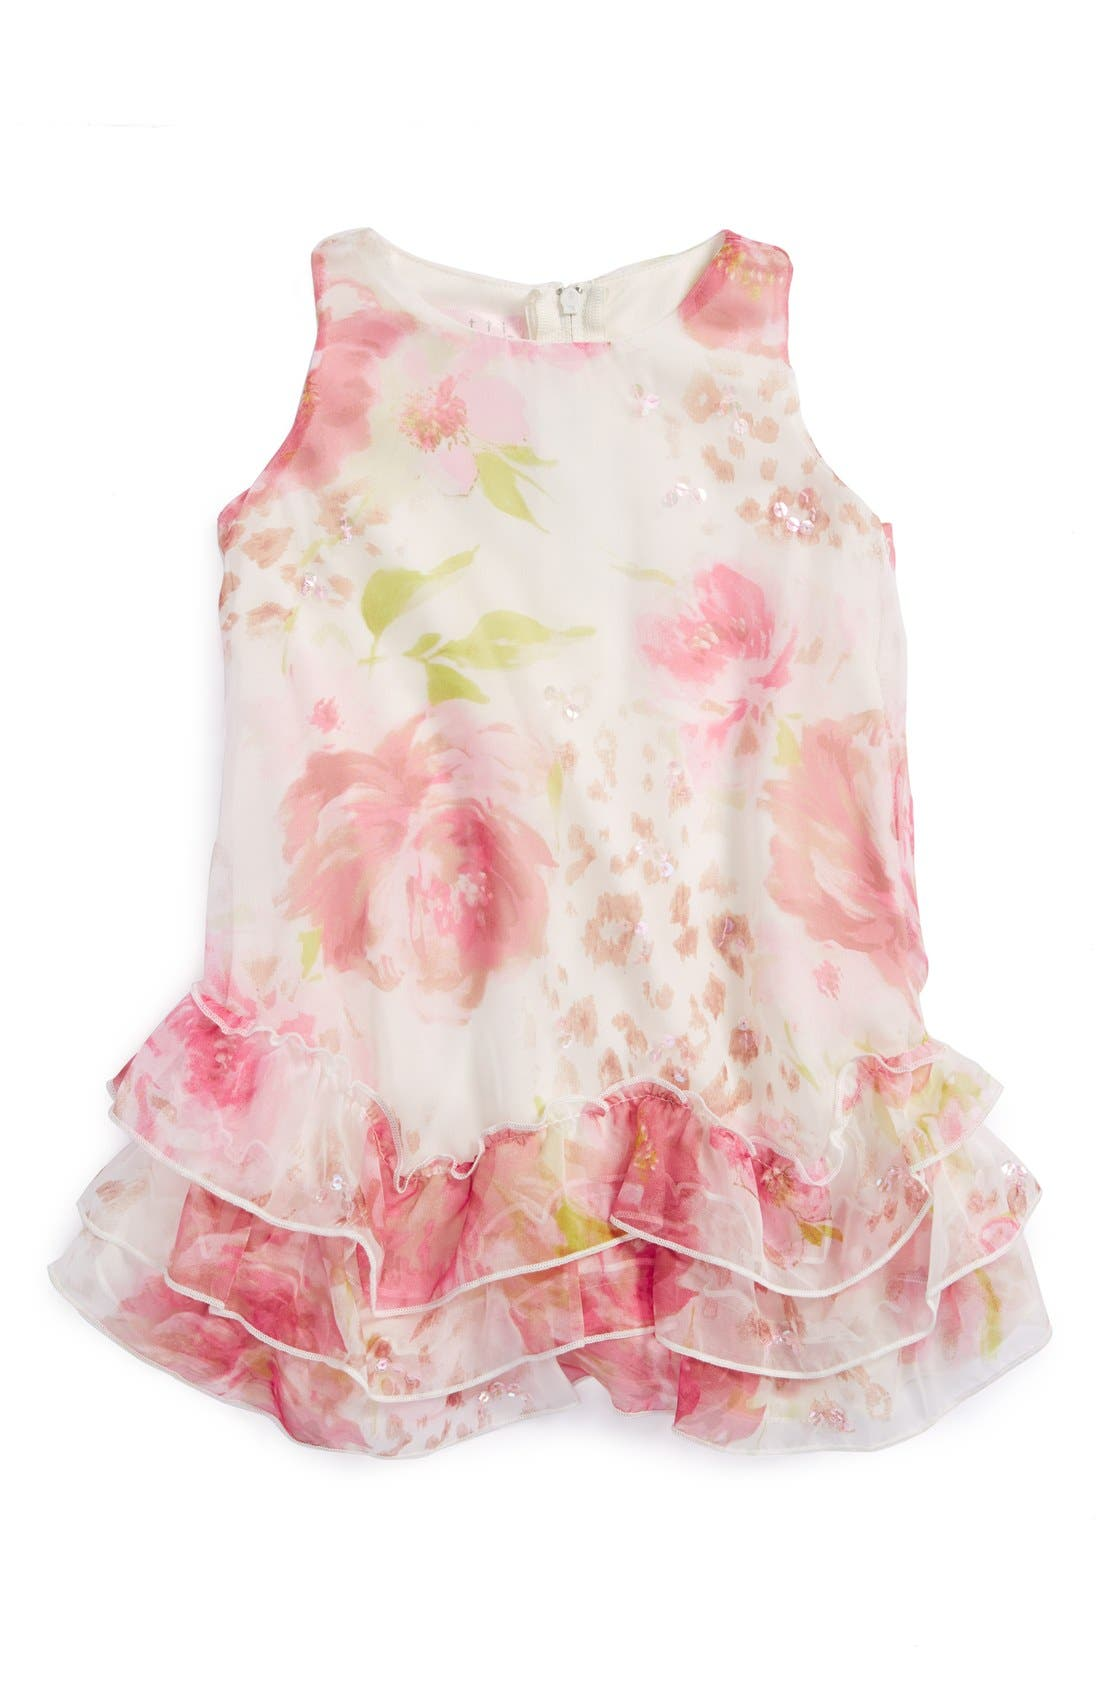 Alternate Image 1 Selected - Biscotti 'Pretty Wild' Sleeveless Dress (Baby Girls)